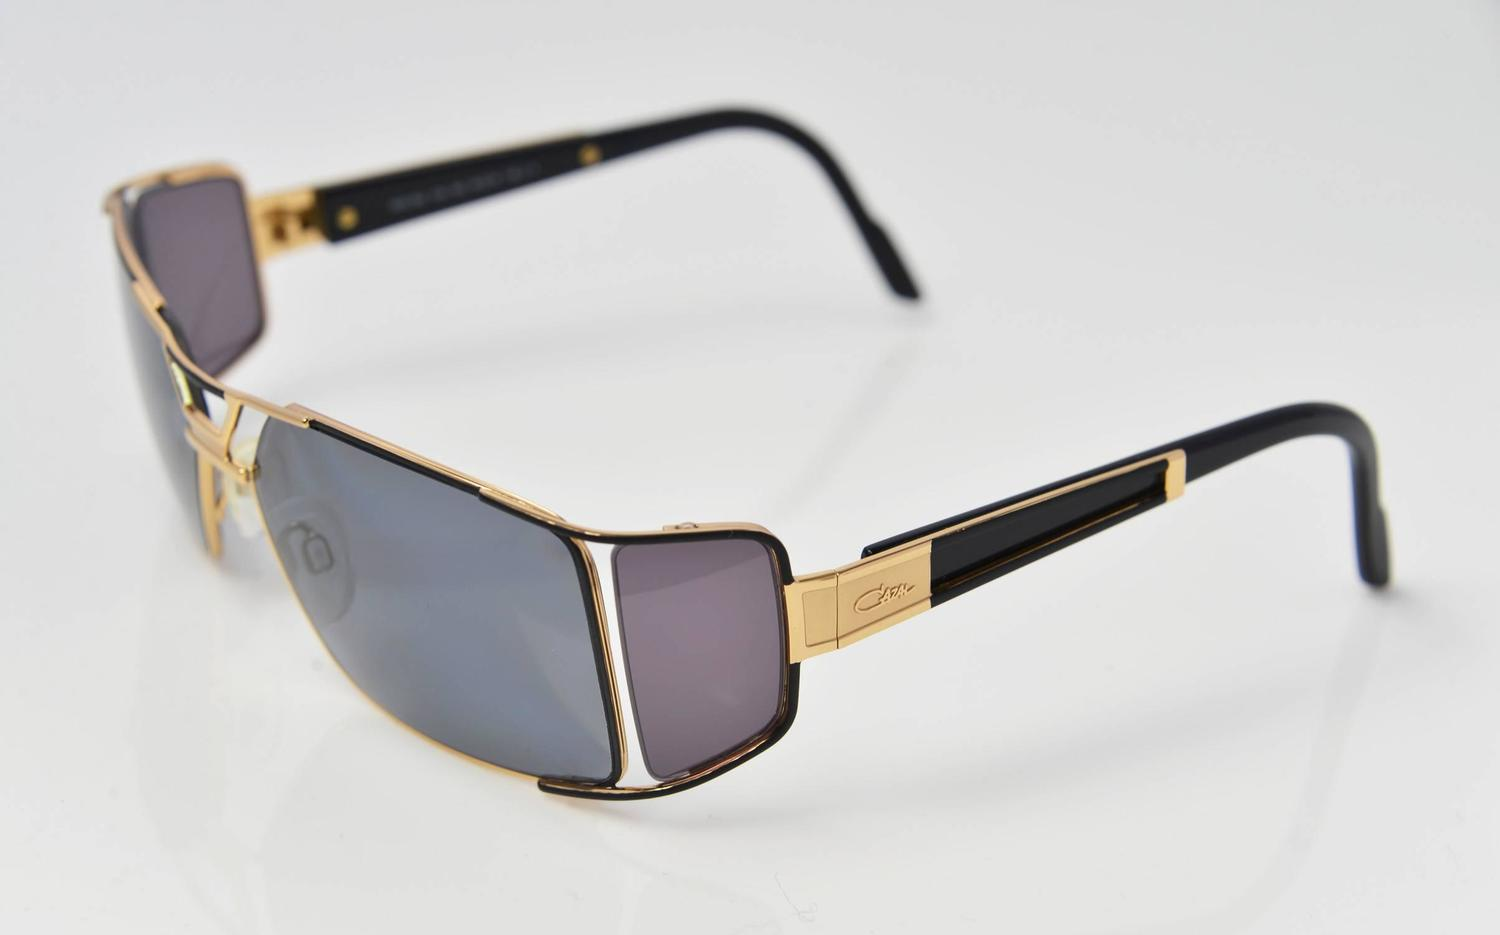 ef2a73b66686 Black Sunglasses With Gold Sides